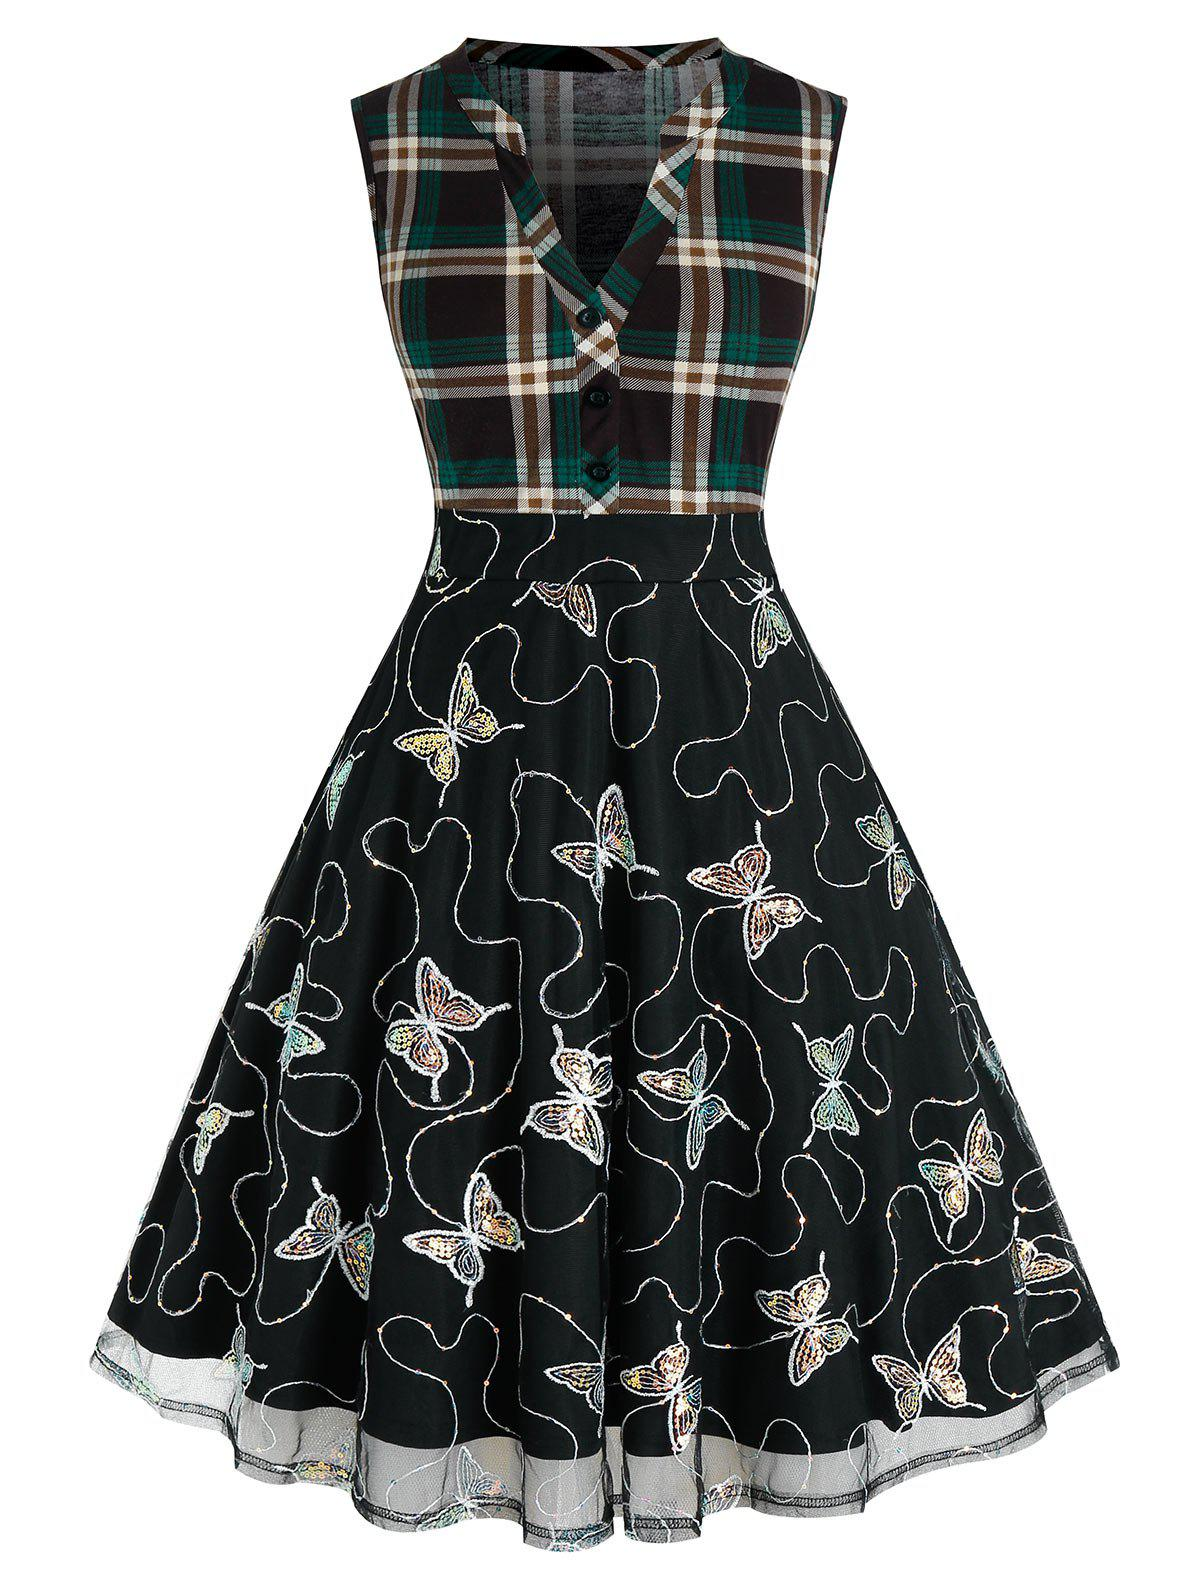 Plus Size Sequined Butterfly Mesh Plaid A Line Dress - DARK FOREST GREEN 3X